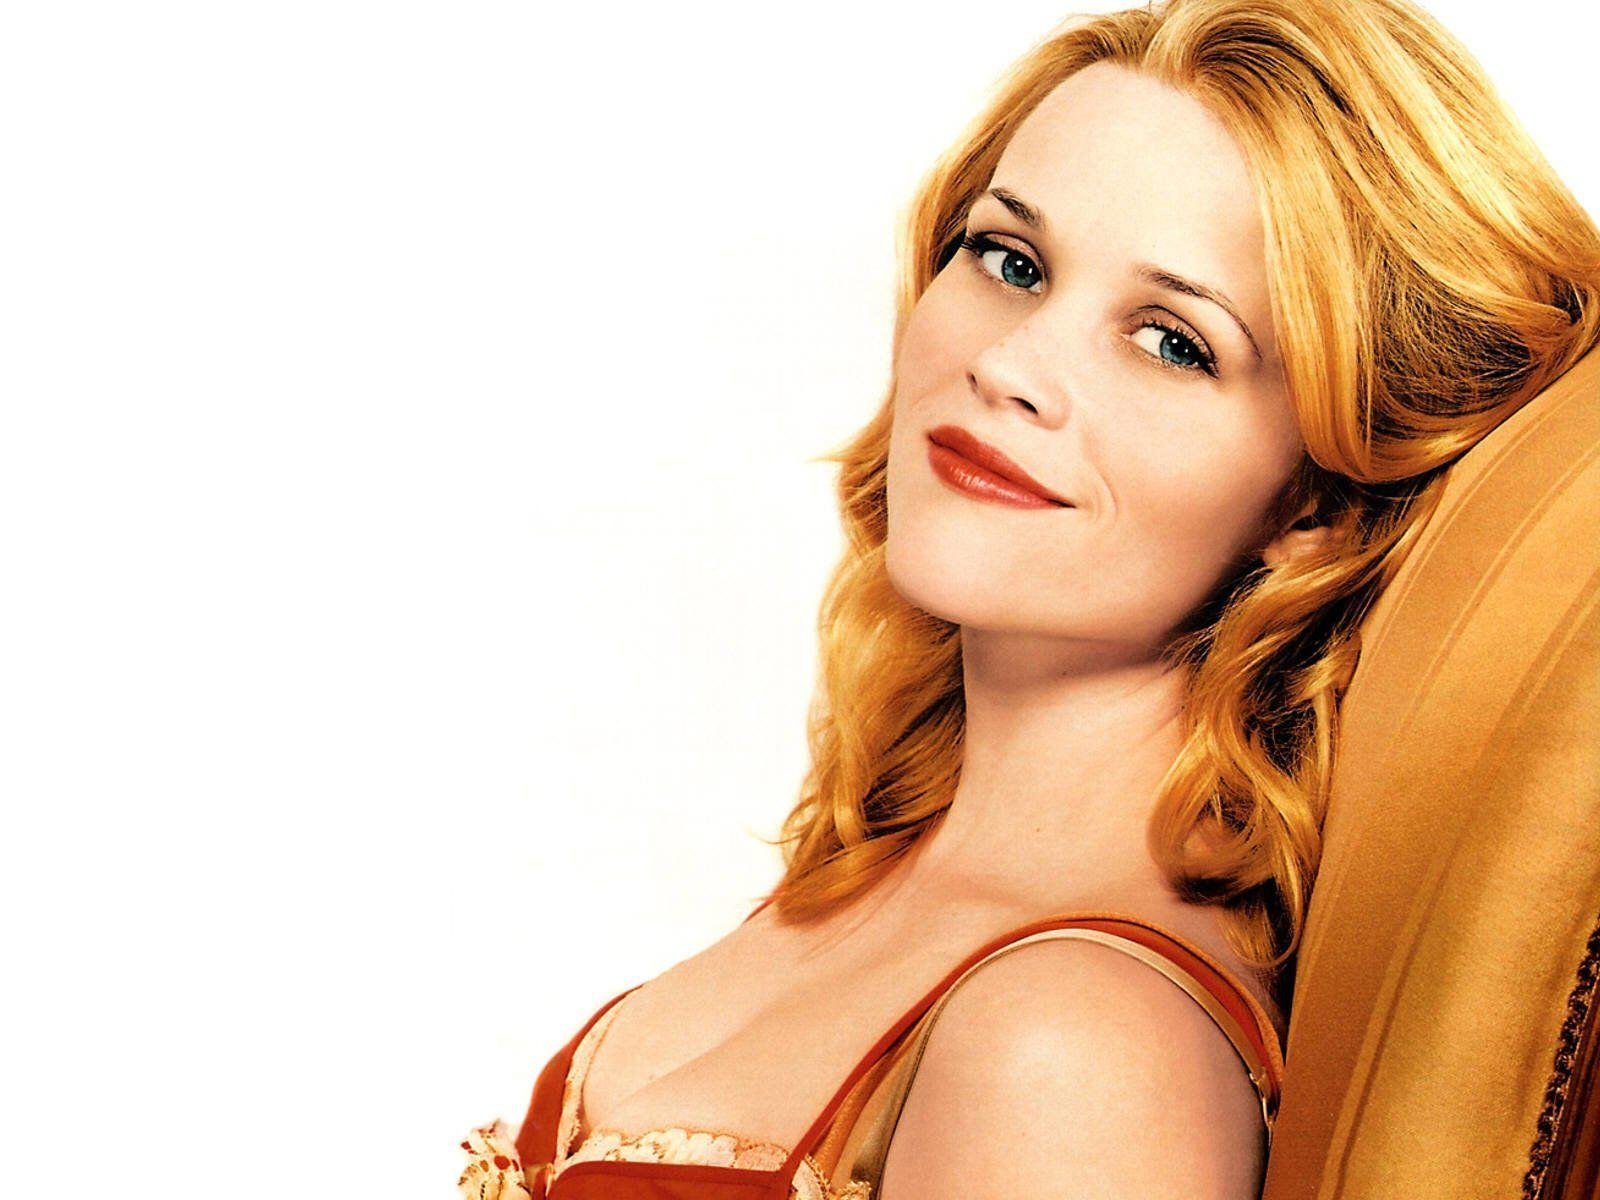 102 Reese Witherspoon HD Wallpapers | Backgrounds - Wallpaper Abyss